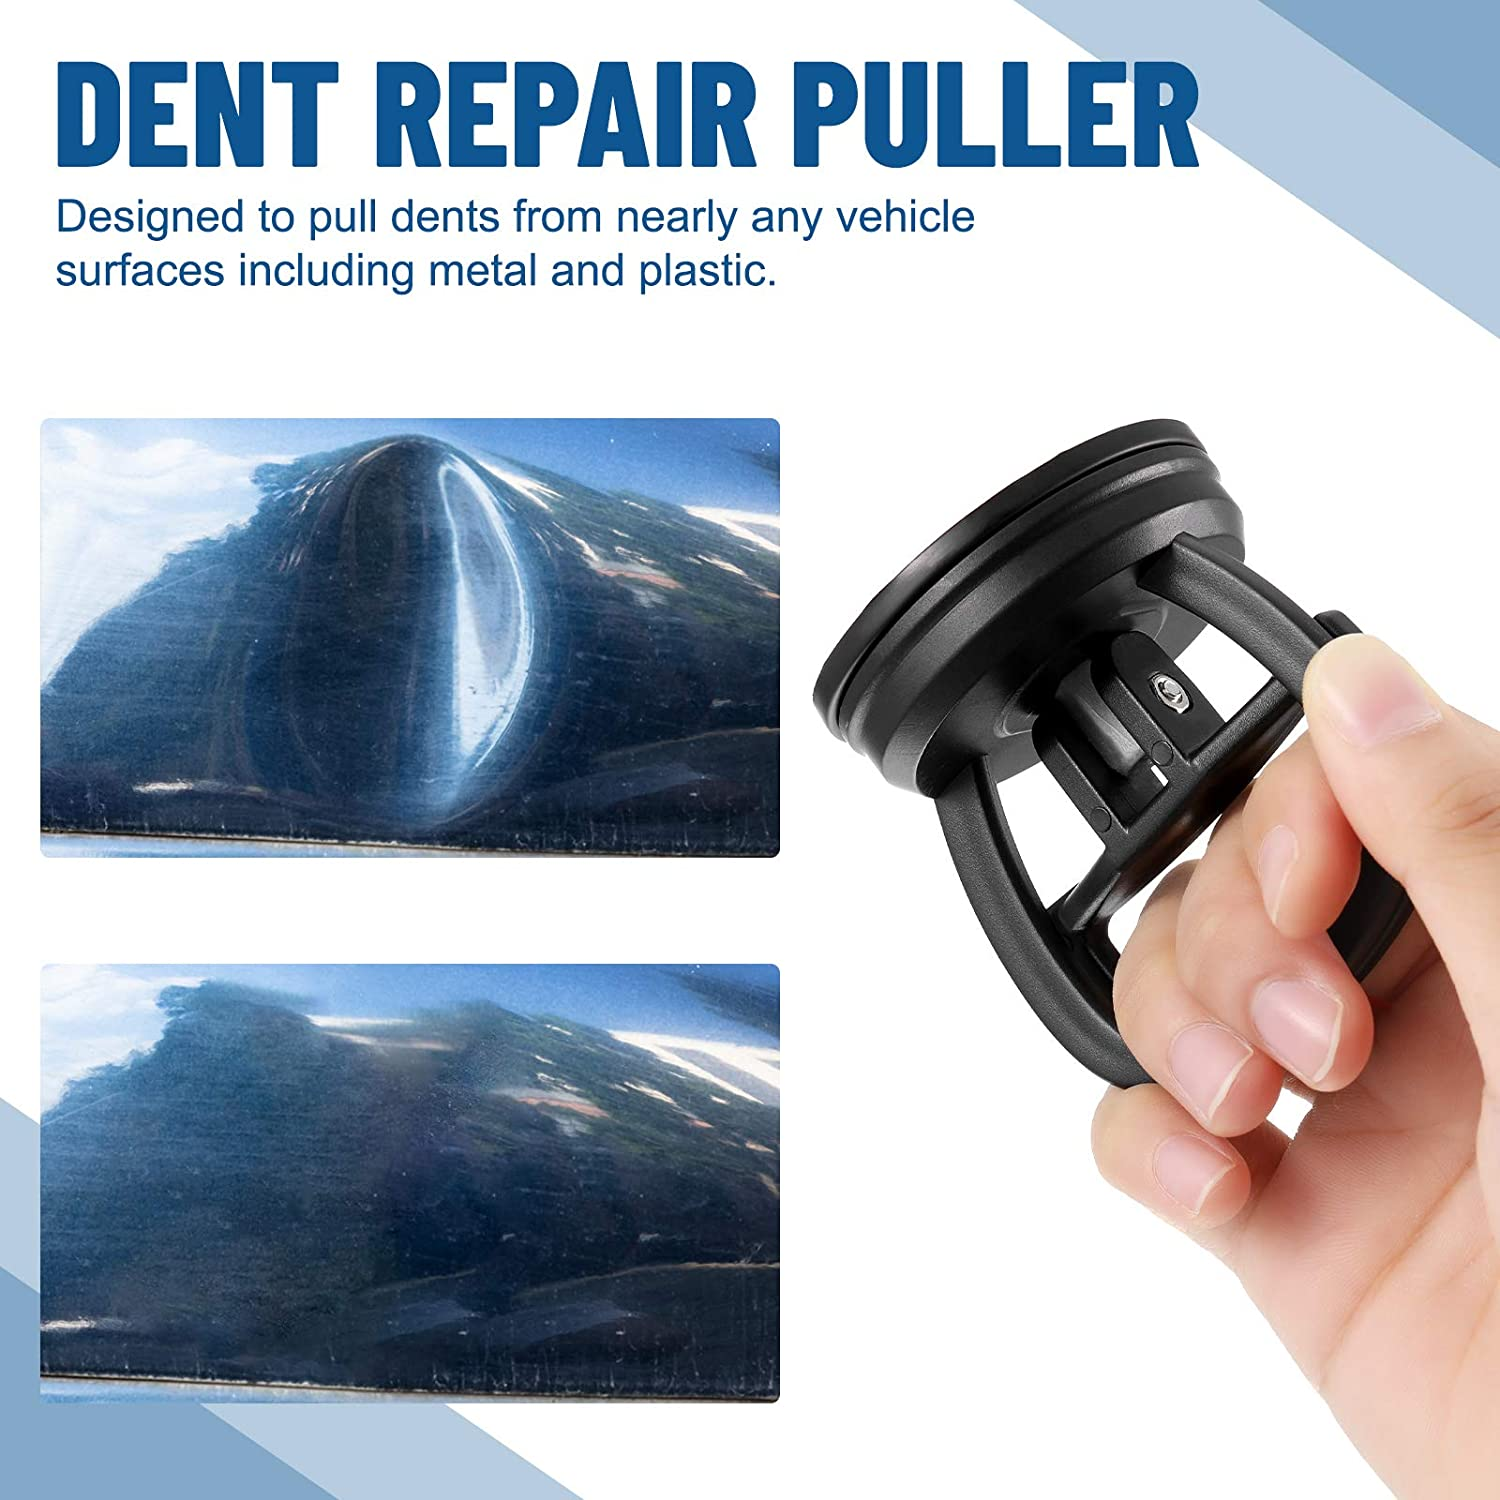 Dent Pullers Removers for Car Dent Repair Mirror Granite Lifting and Objects Moving Tiles Frienda 4 Pieces Car Dent Repair Tools Suction Cup Dent Pullers Car Dent Handle Lifters Glass Blue